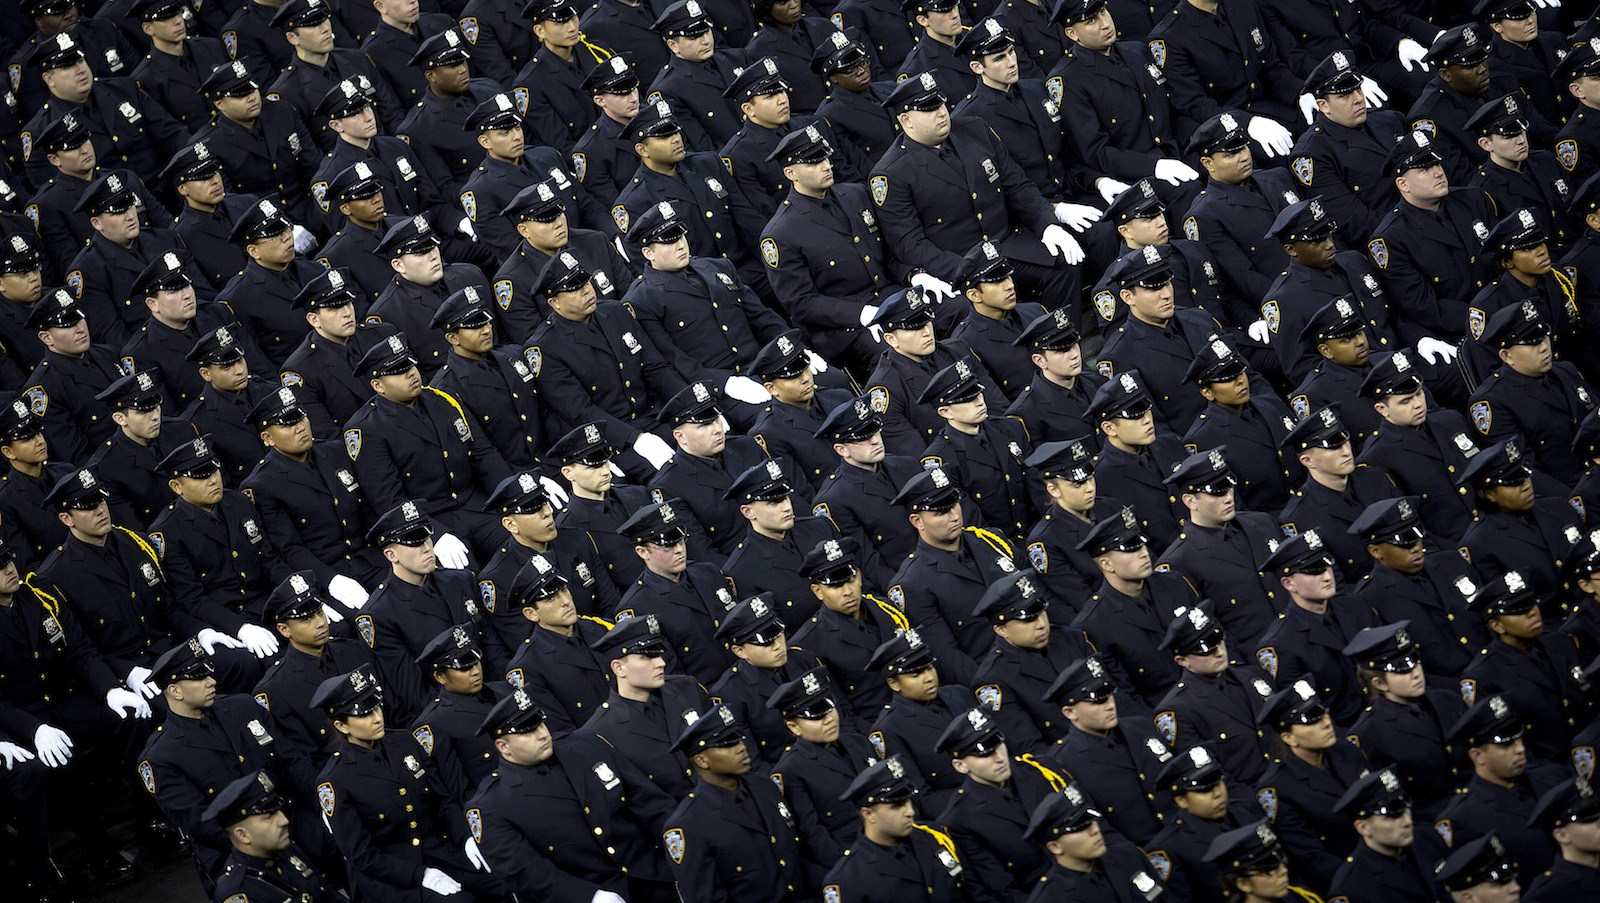 New York Police Department graduates attend their induction ceremony at Madison Square Garden in New York, December 27, 2013. The NYPD graduated 1171 recruits to ranks of police officer. REUTERS/Carlo Allegri (UNITED STATES - Tags: SOCIETY TPX IMAGES OF THE DAY) - RTX16V9L